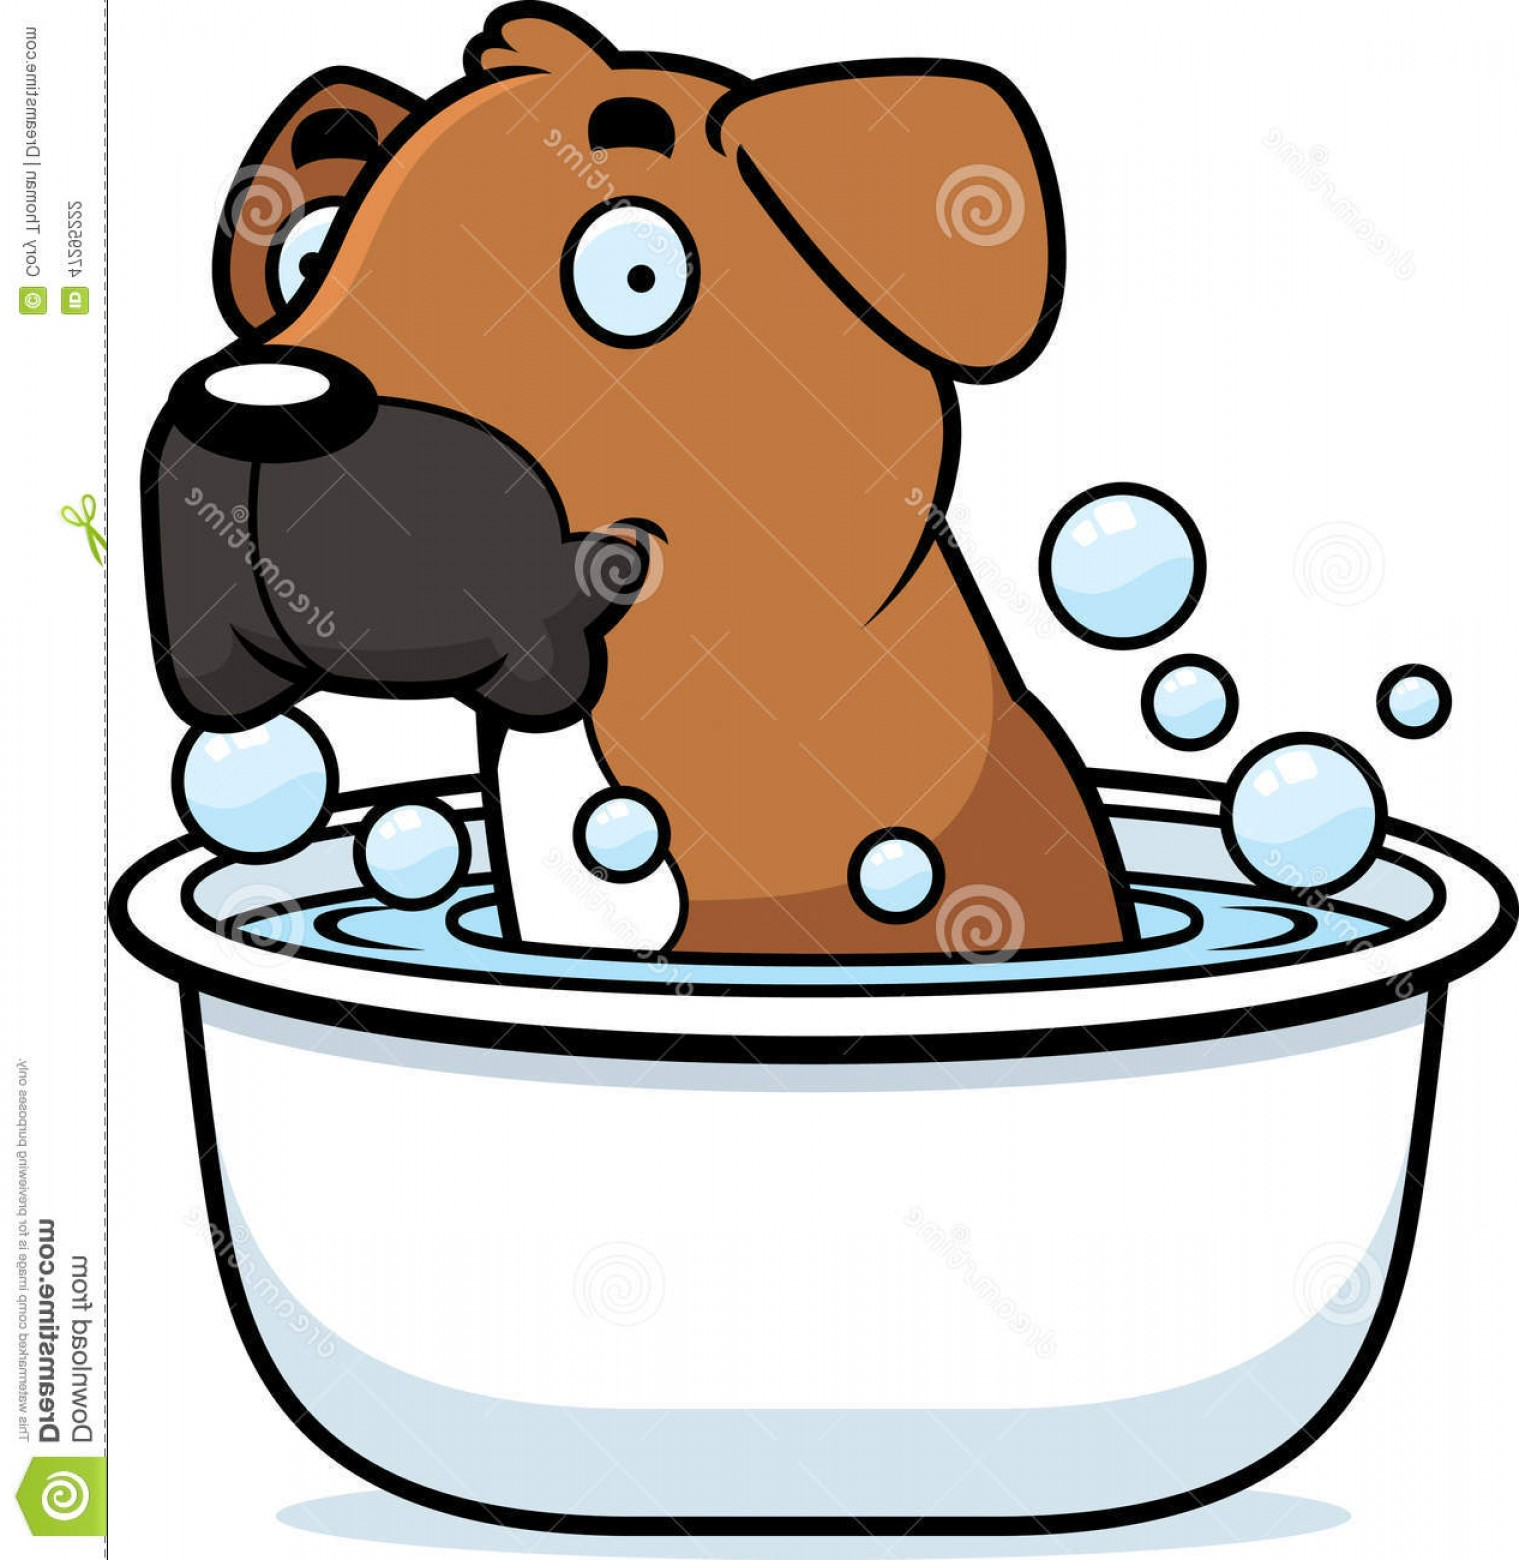 Bpxer Vector Art Happy Dog: Stock Illustration Cartoon Boxer Bath Illustration Dog Taking Image